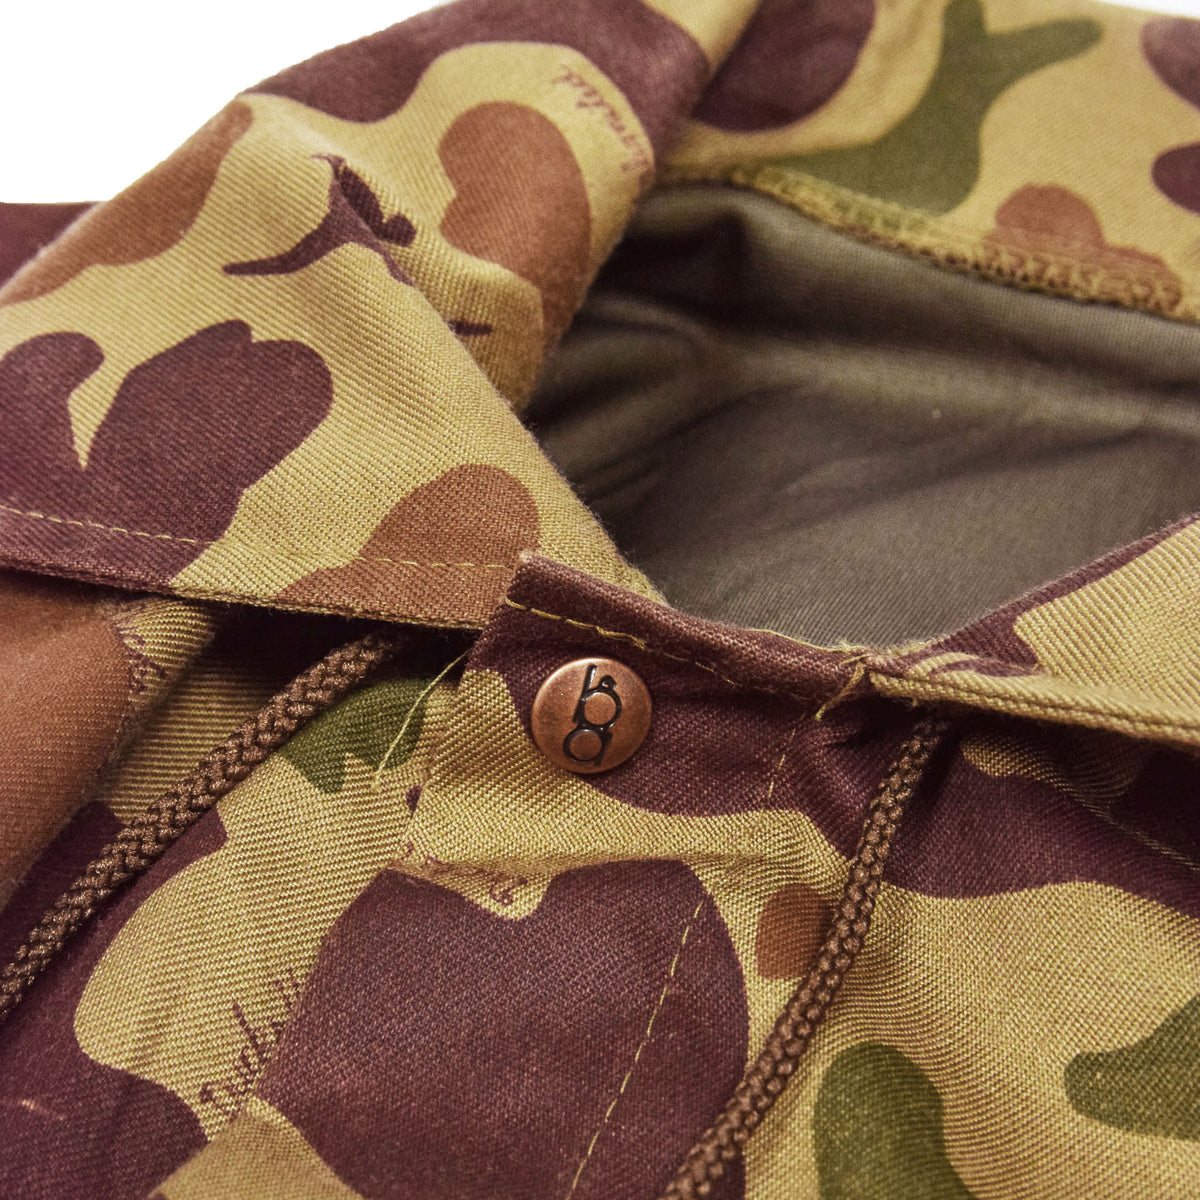 Vintage Bob Allen Gore-Tex Outdoor Camo Hunting Jacket L / XL collar detail